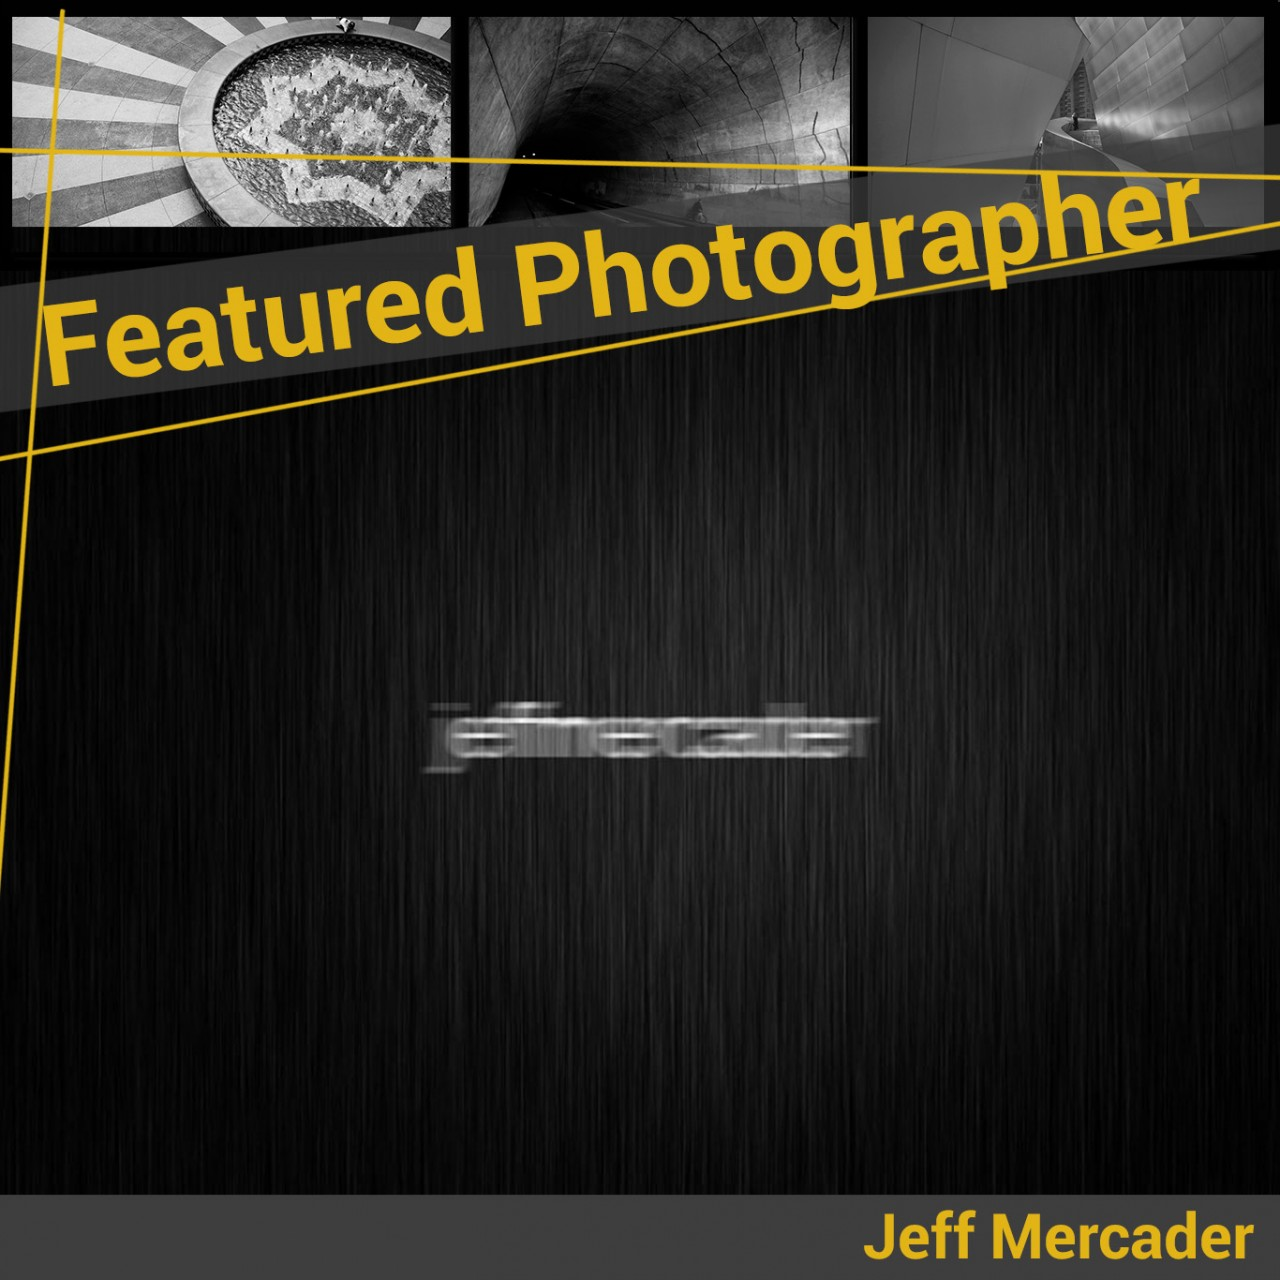 Templatet Featured PhotographerJM